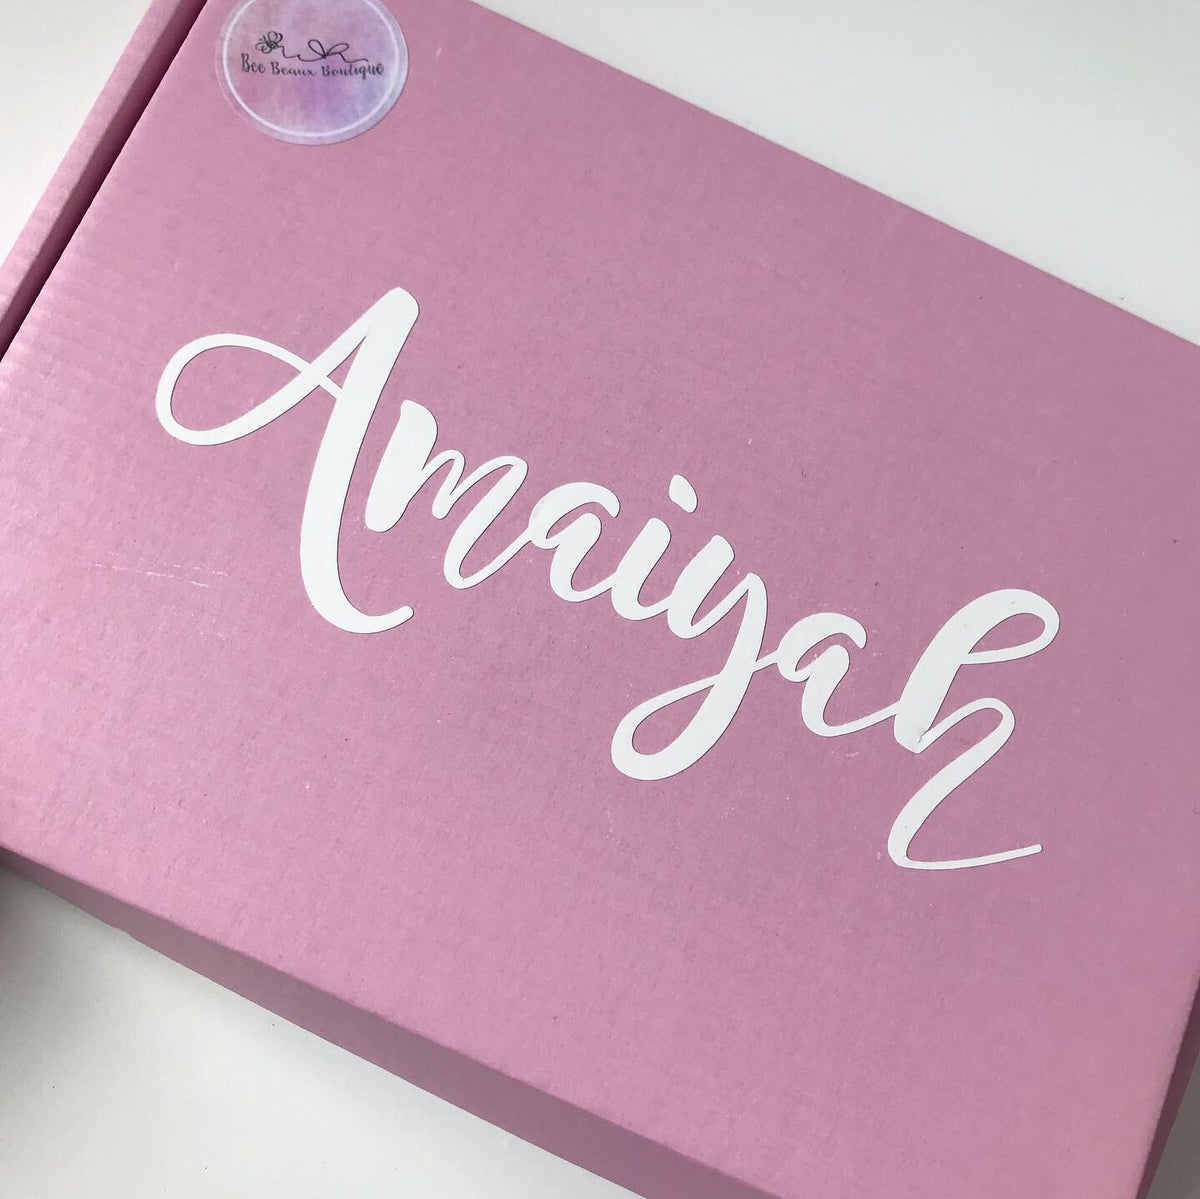 Image of Personalised gift box